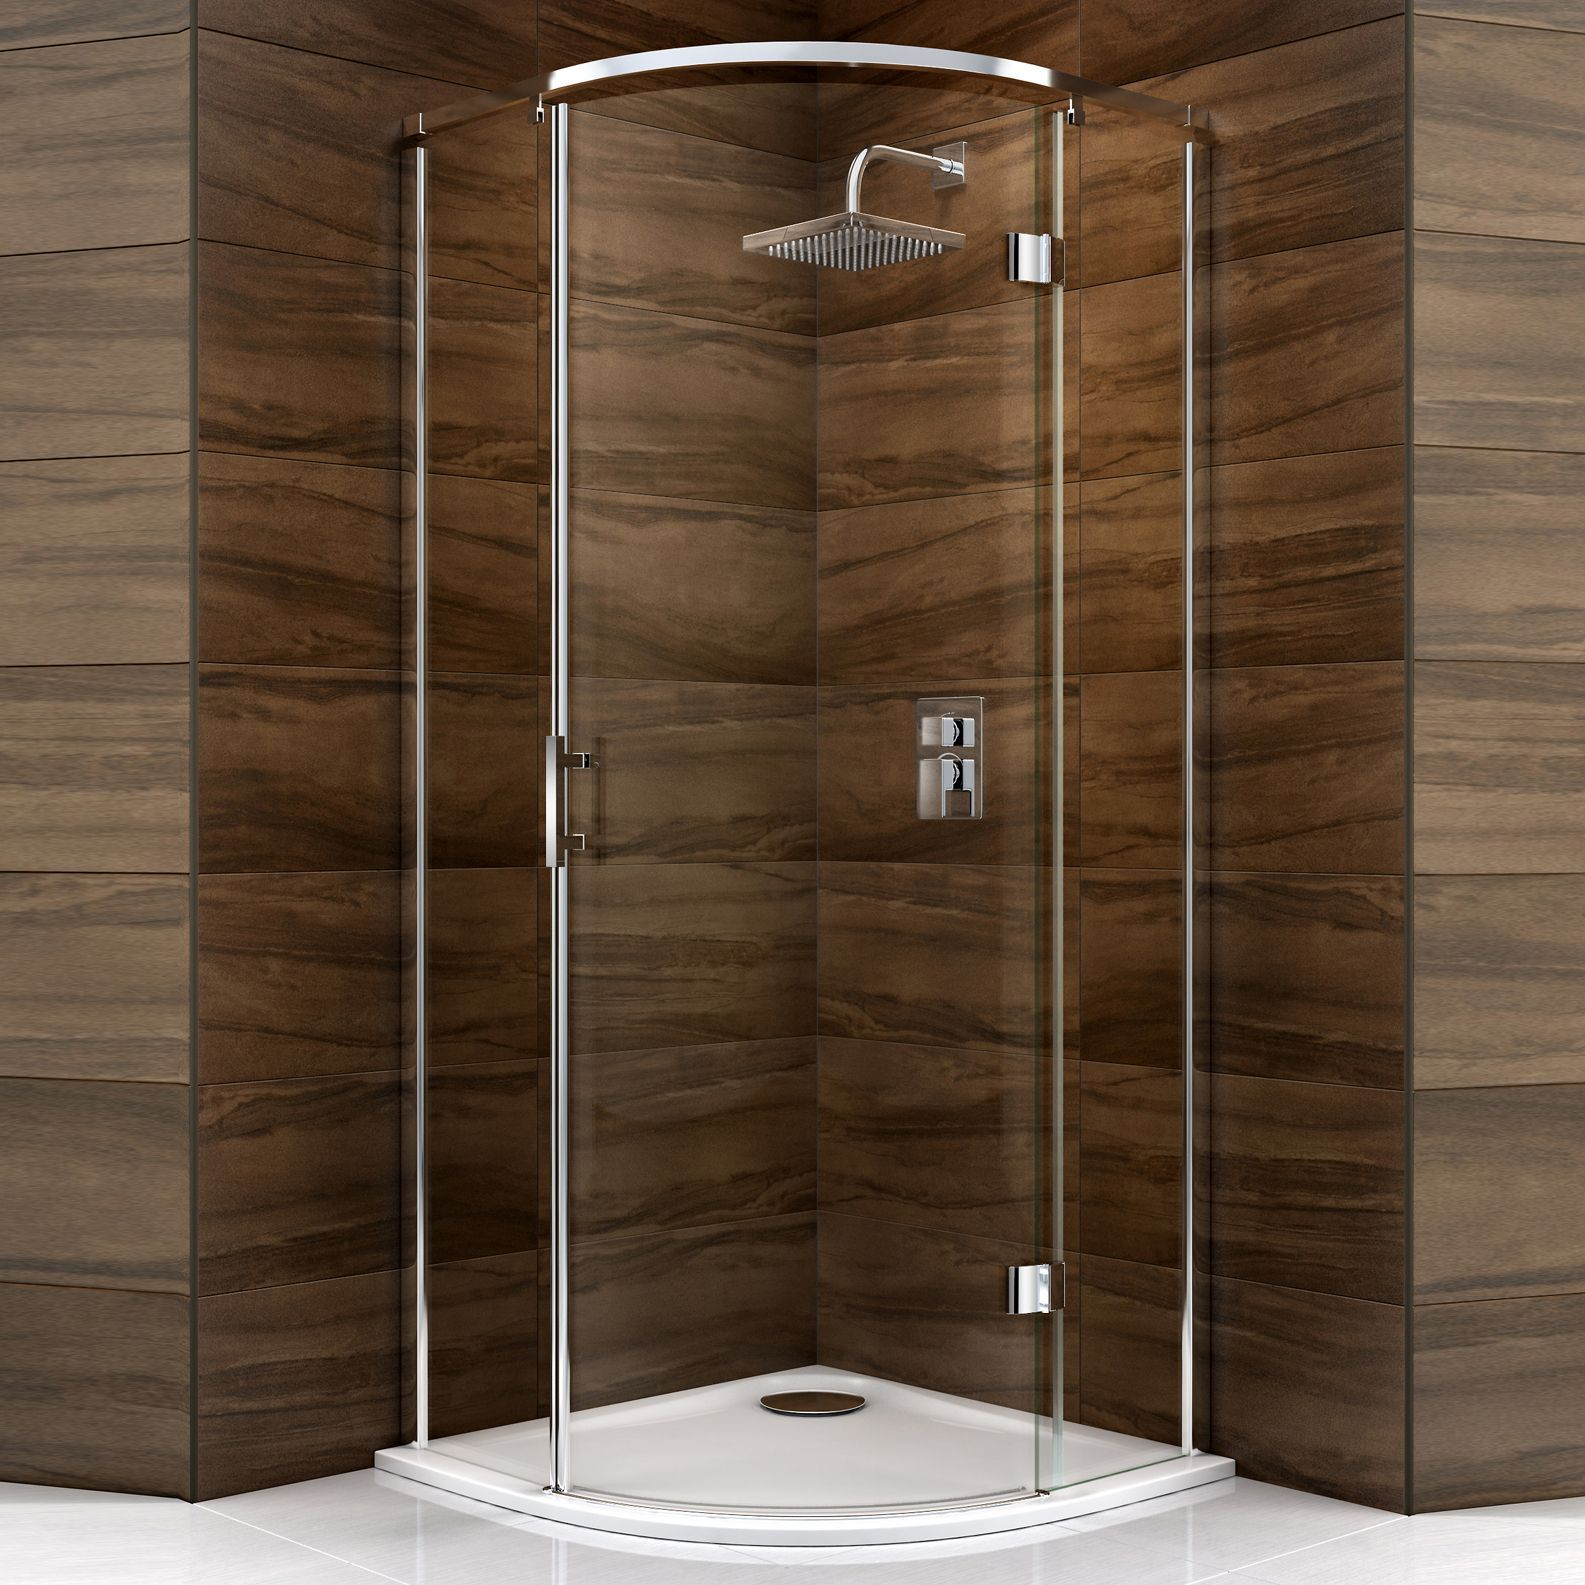 Cooke & Lewis Cascata Quadrant Shower Enclosure, Tray & Waste with ...